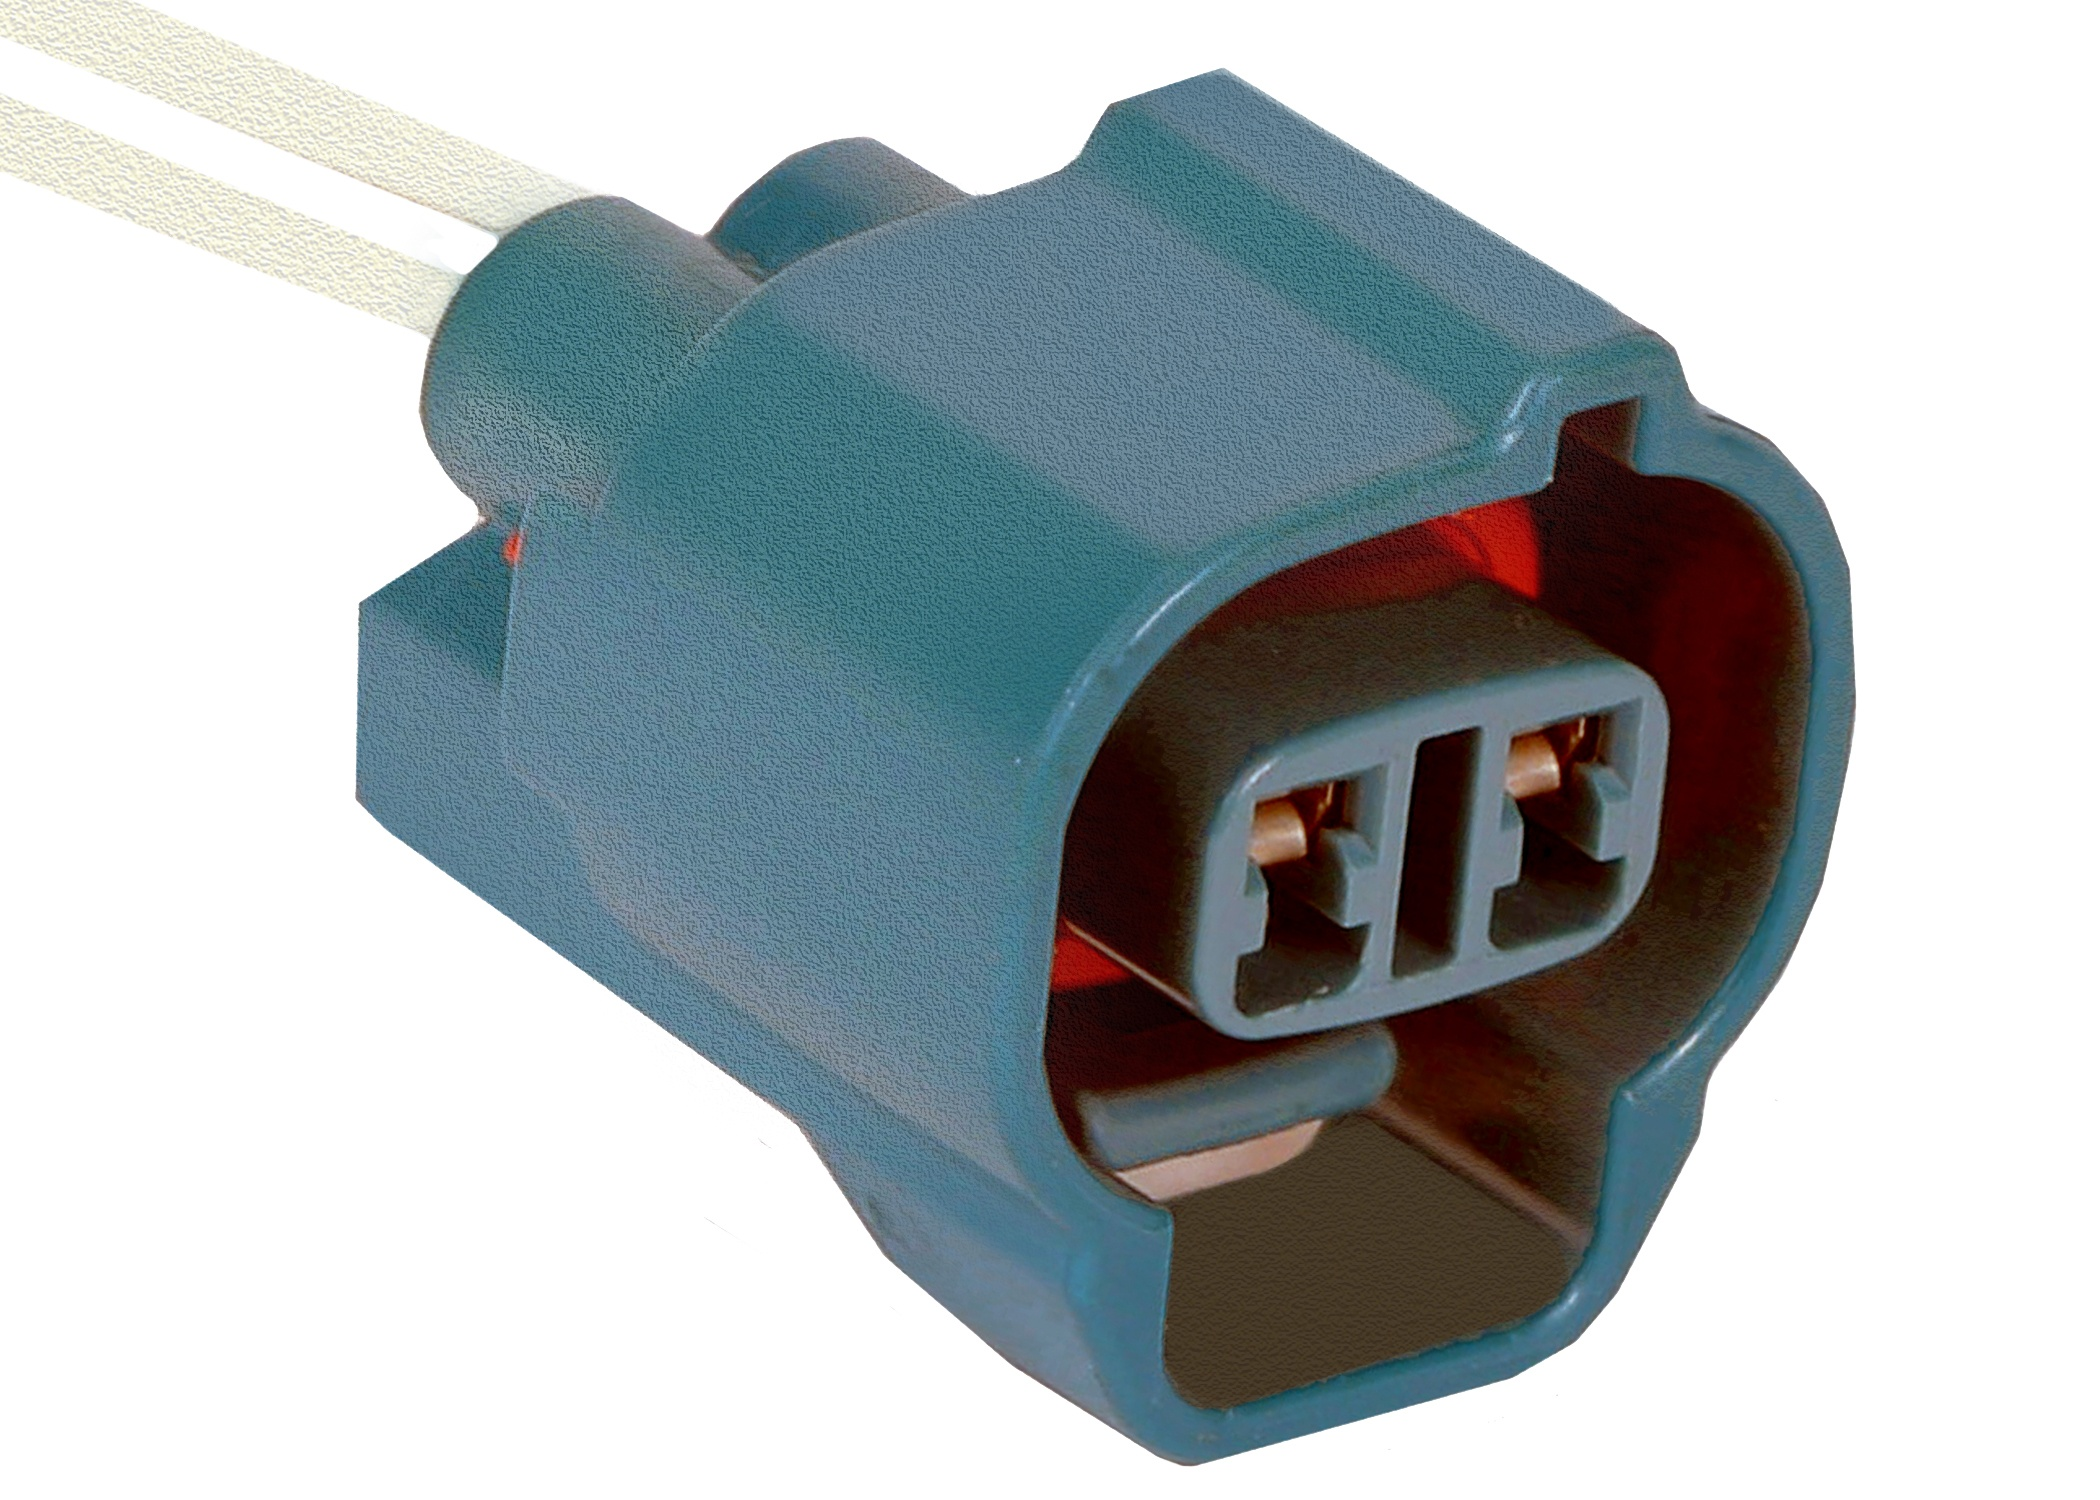 ACDELCO GM ORIGINAL EQUIPMENT - Secondary Air Injection Shut-Off Valve Connector - DCB PT1852